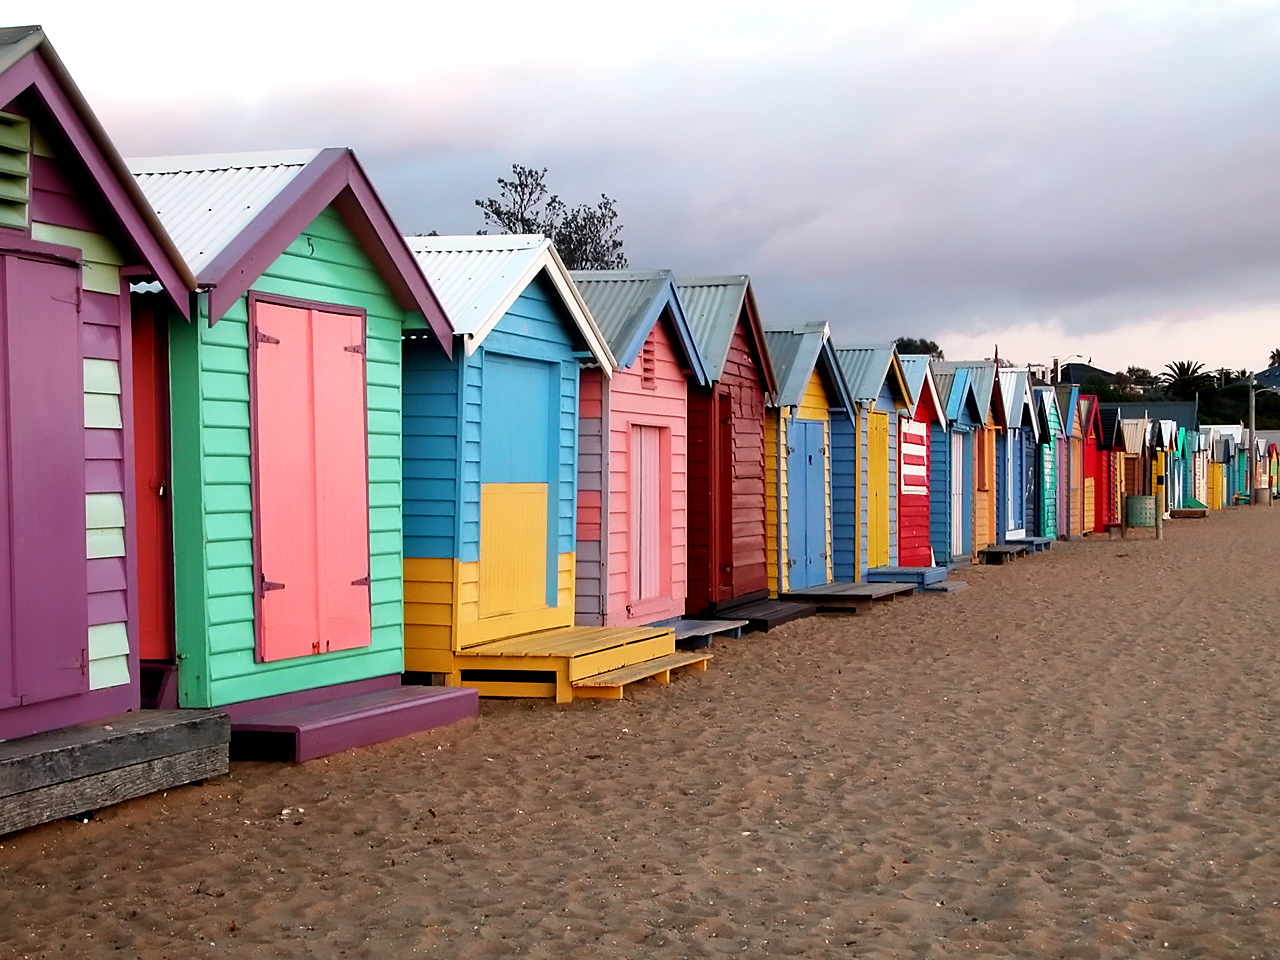 Bright Beach Change Rooms By Beau Wade from New York, NY, United States (Brighton Beach, Melbourne 2003) [CC-BY-2.0 (http://creativecommons.org/licenses/by/2.0)], via Wikimedia Commons